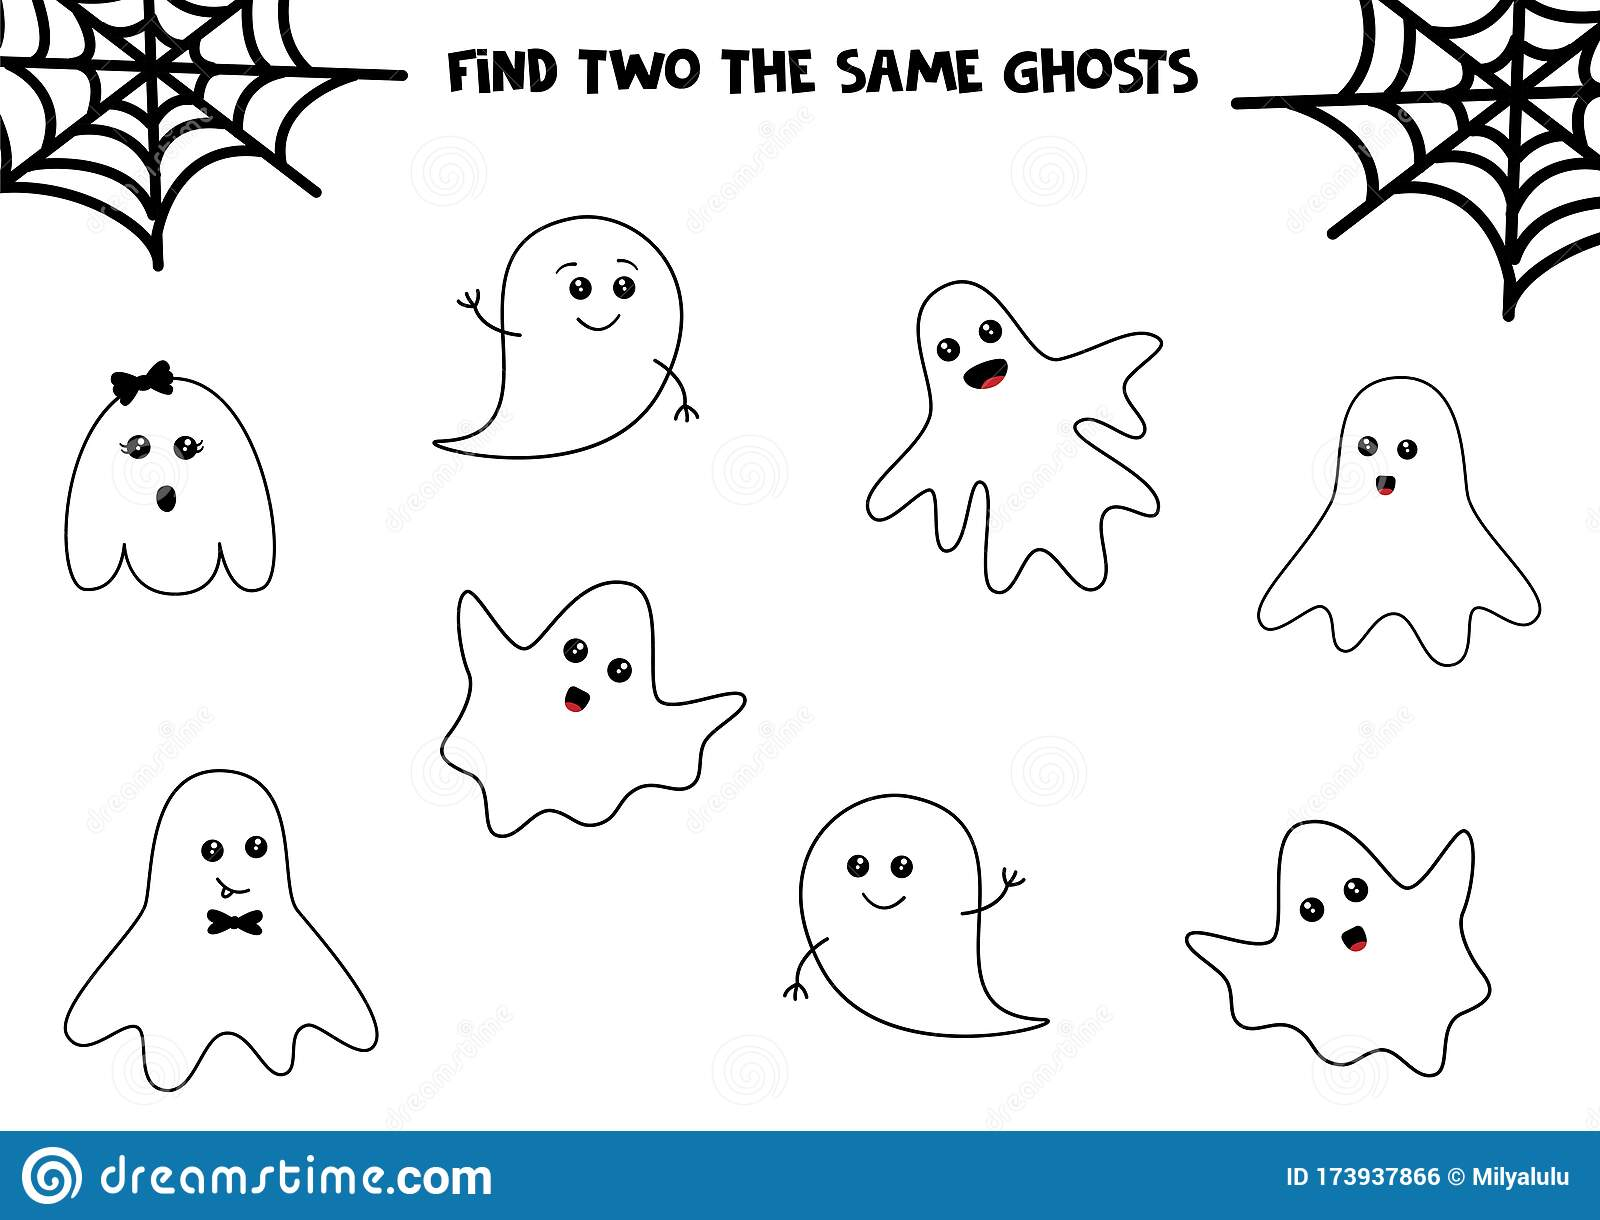 Set Of Cute Halloween Ghosts Find Two Same Ghosts